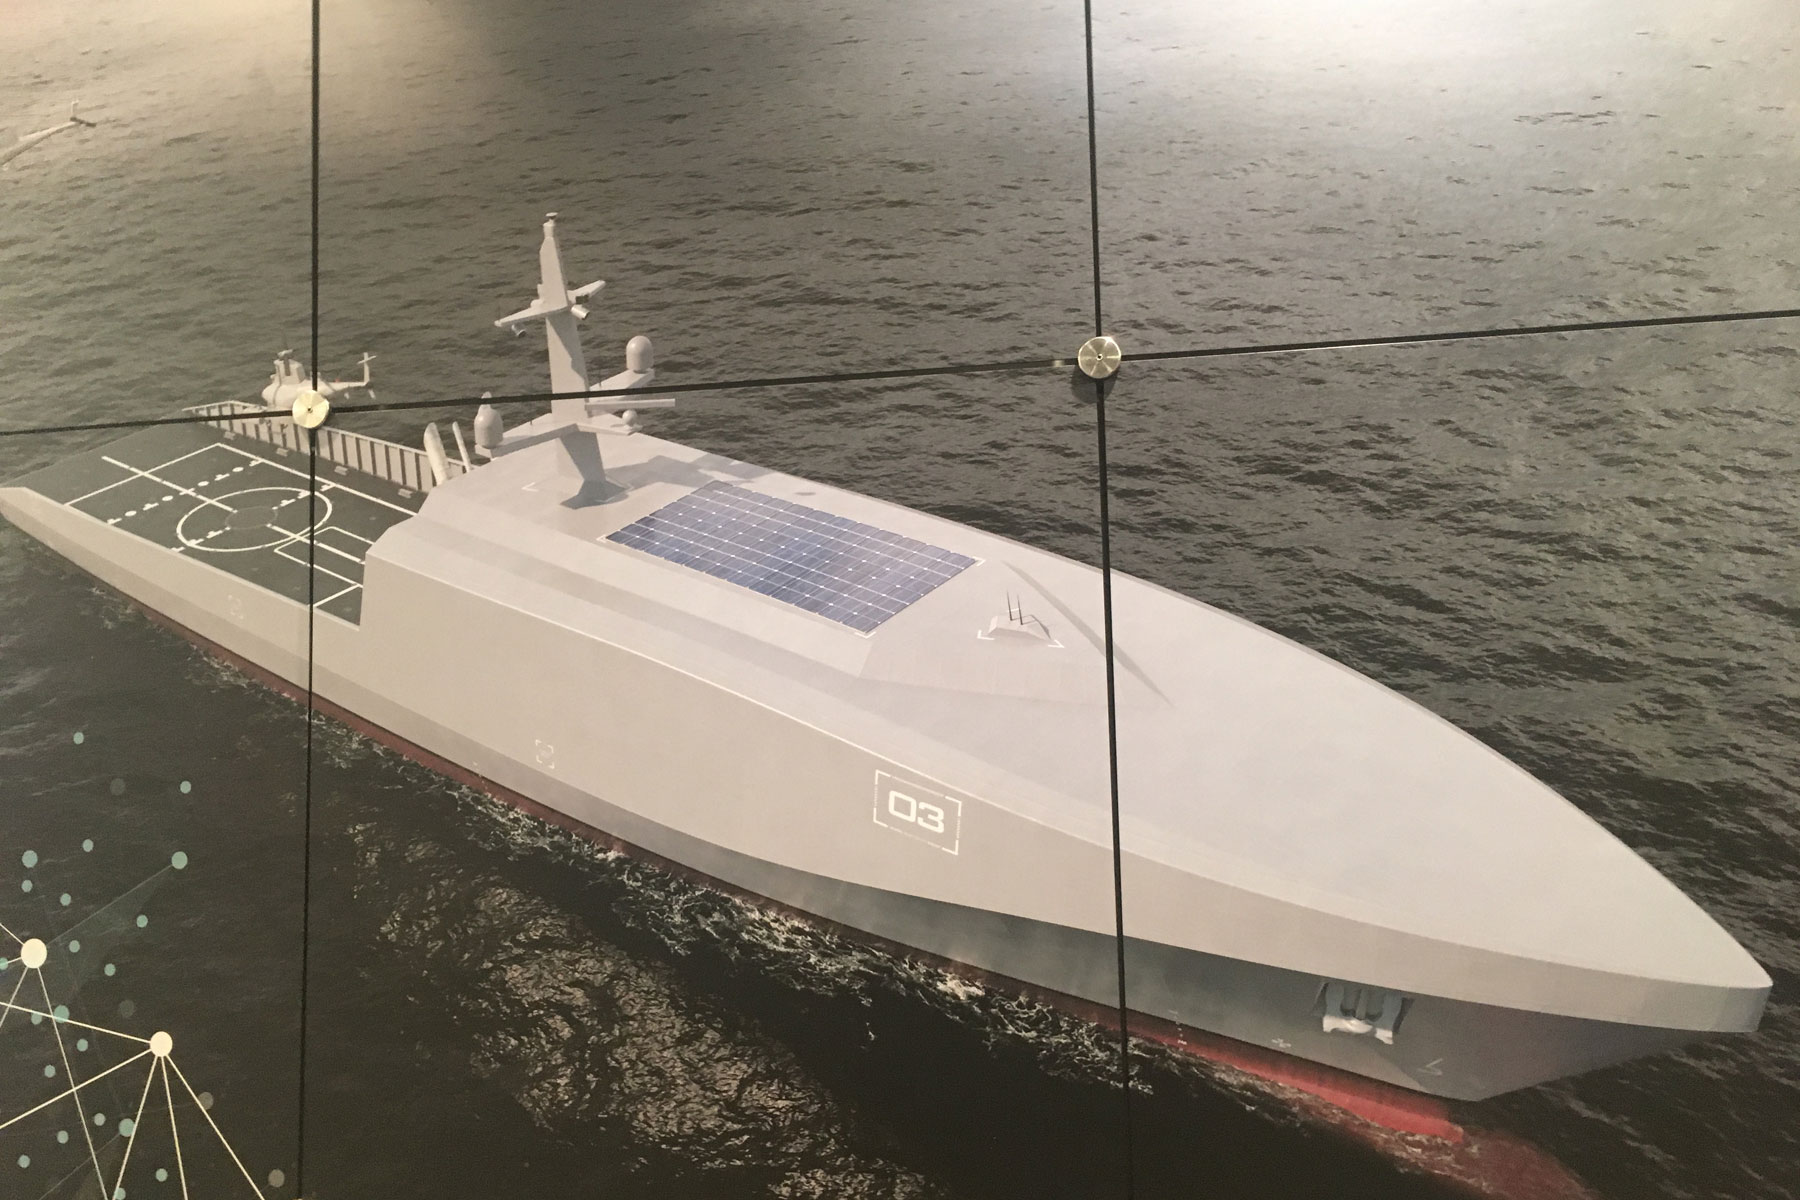 This Unmanned Rolls Royce Ship Concept Could Launch Drone Choppers